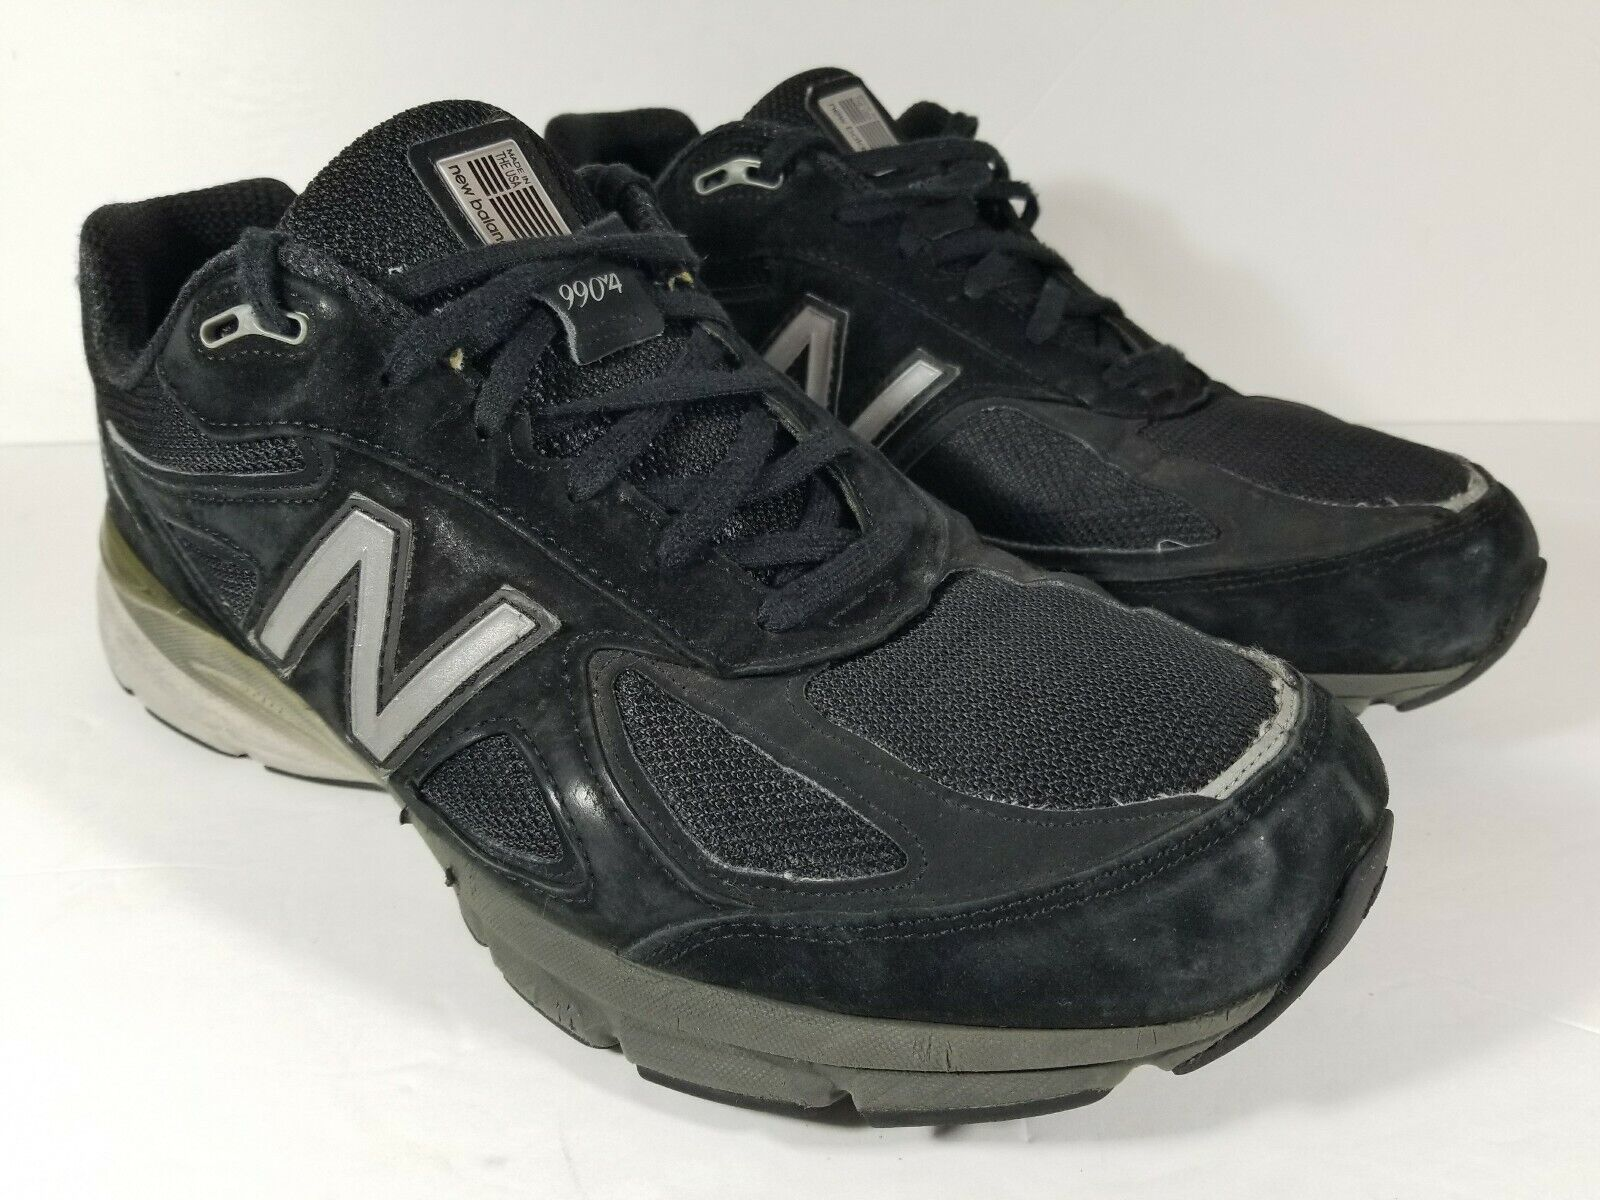 New Balance 990v4 Made in USA Men's Running shoes Black Silver M990bk4 Size 13 4E